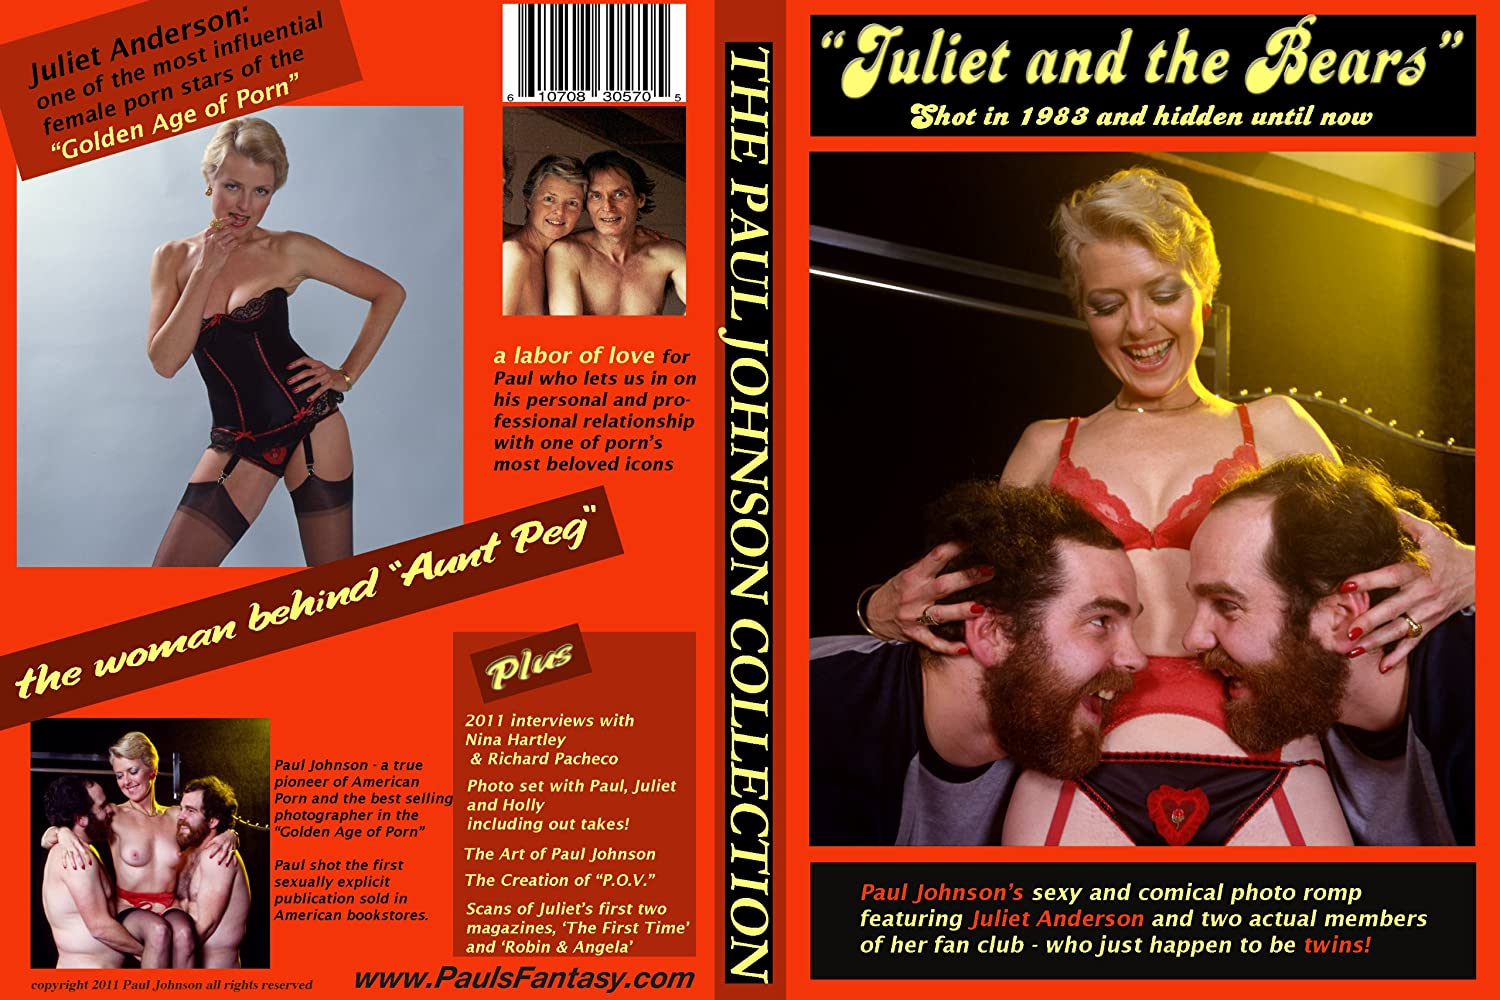 Amazon.com: Juliet and the Bears DVD: Juliet Anderson, Paul Johnson: Movies  & TV